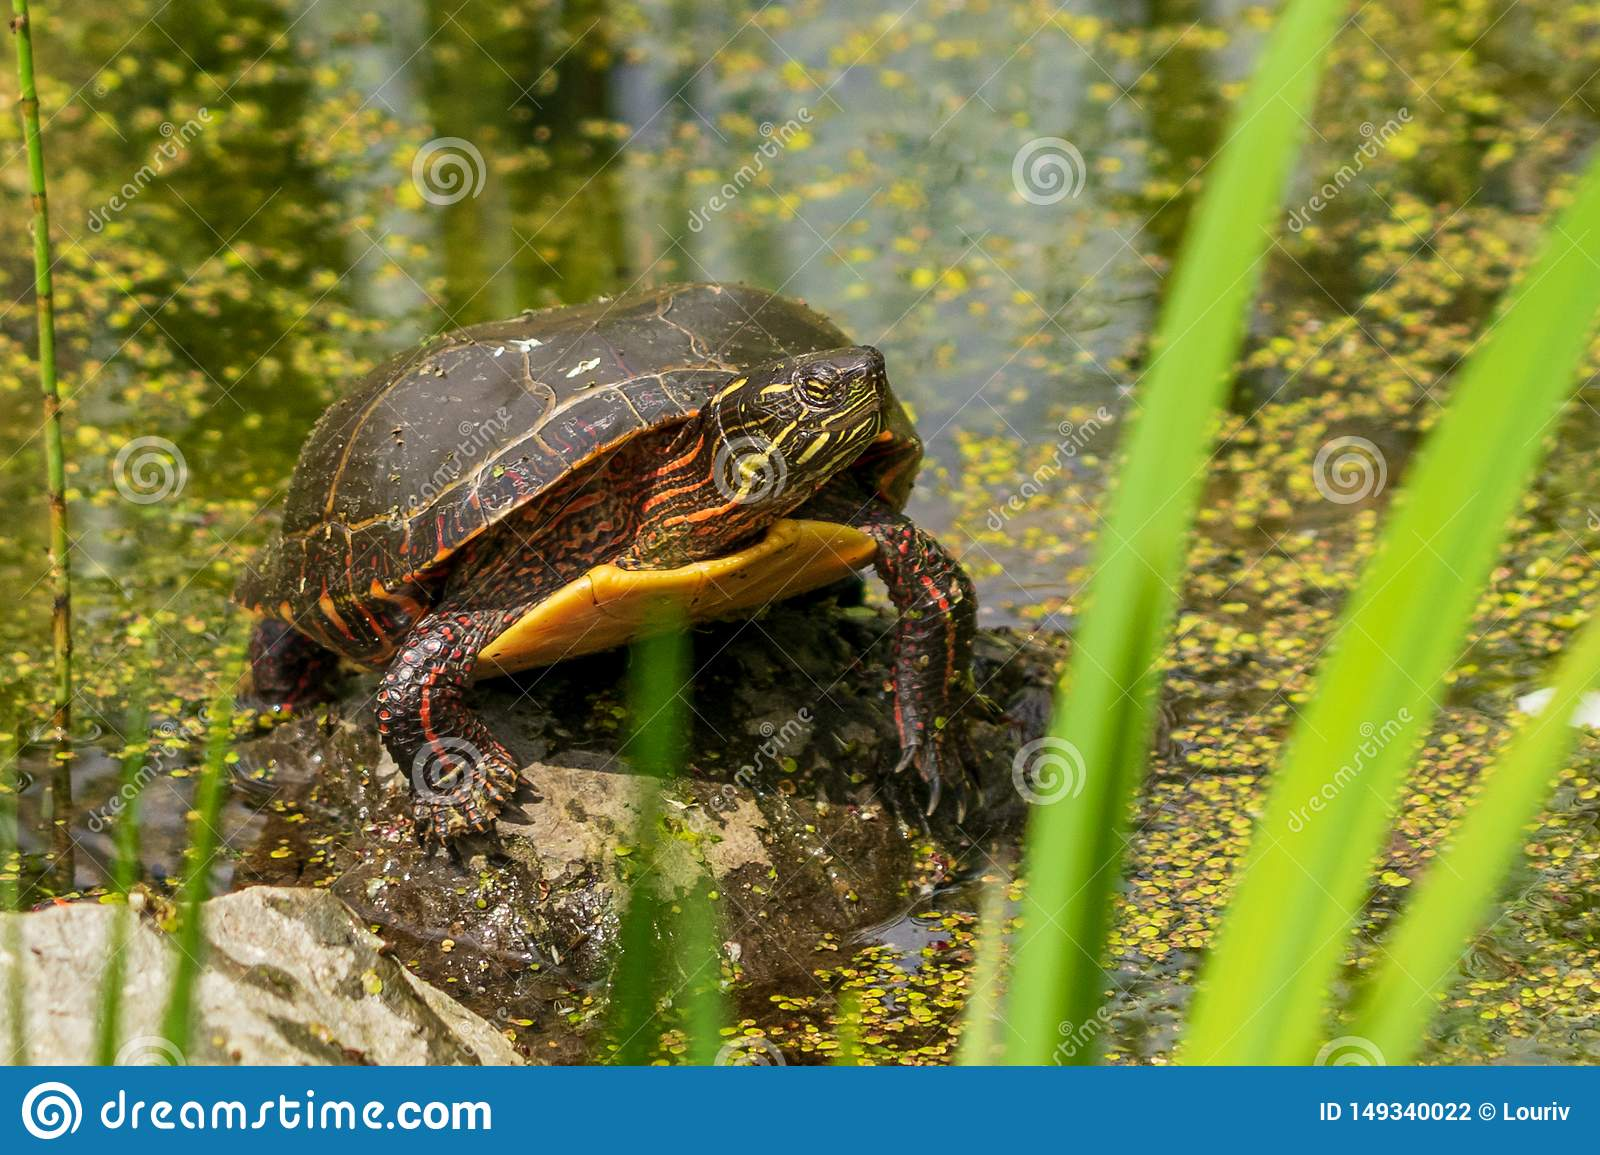 Mr Turtle Home At Montreal Botanical Garden Stock Photo Image Of Peace Stone 149340022